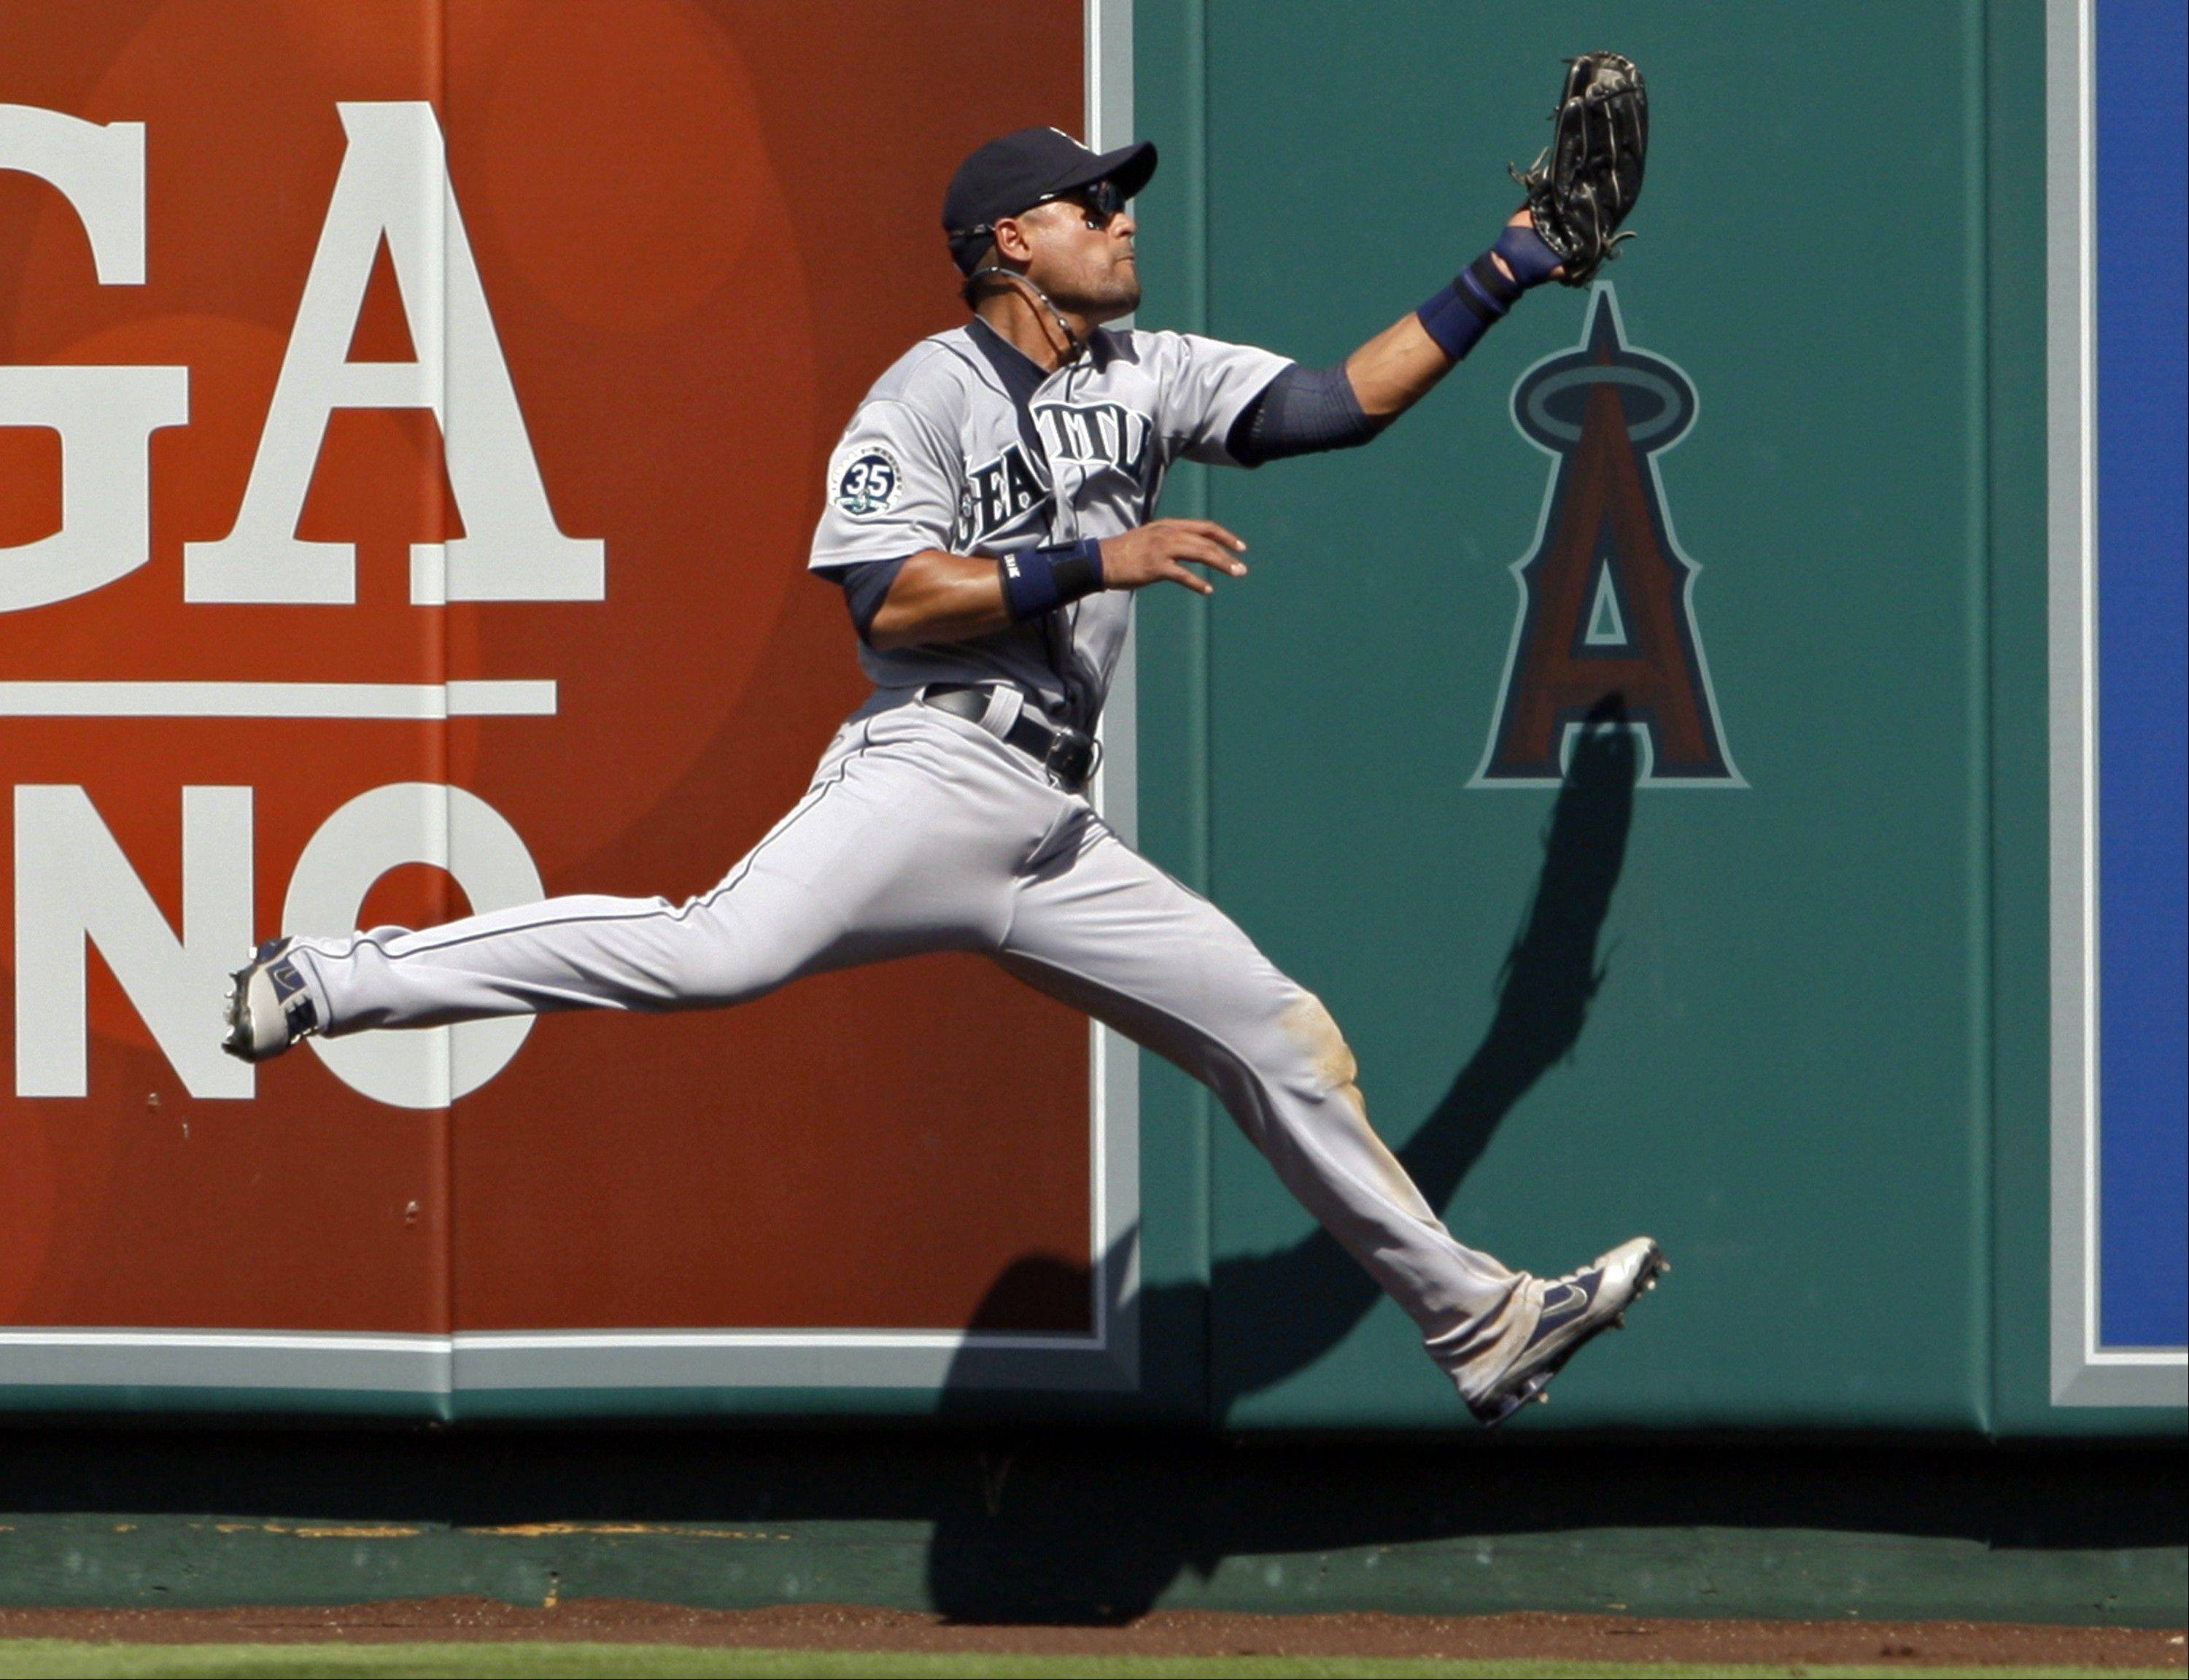 Seattle Mariners center fielder Franklin Gutierrez catches a fly ball hit by the Angels' Mike Trout in the fifth inning Thursday in Anaheim, Calif.